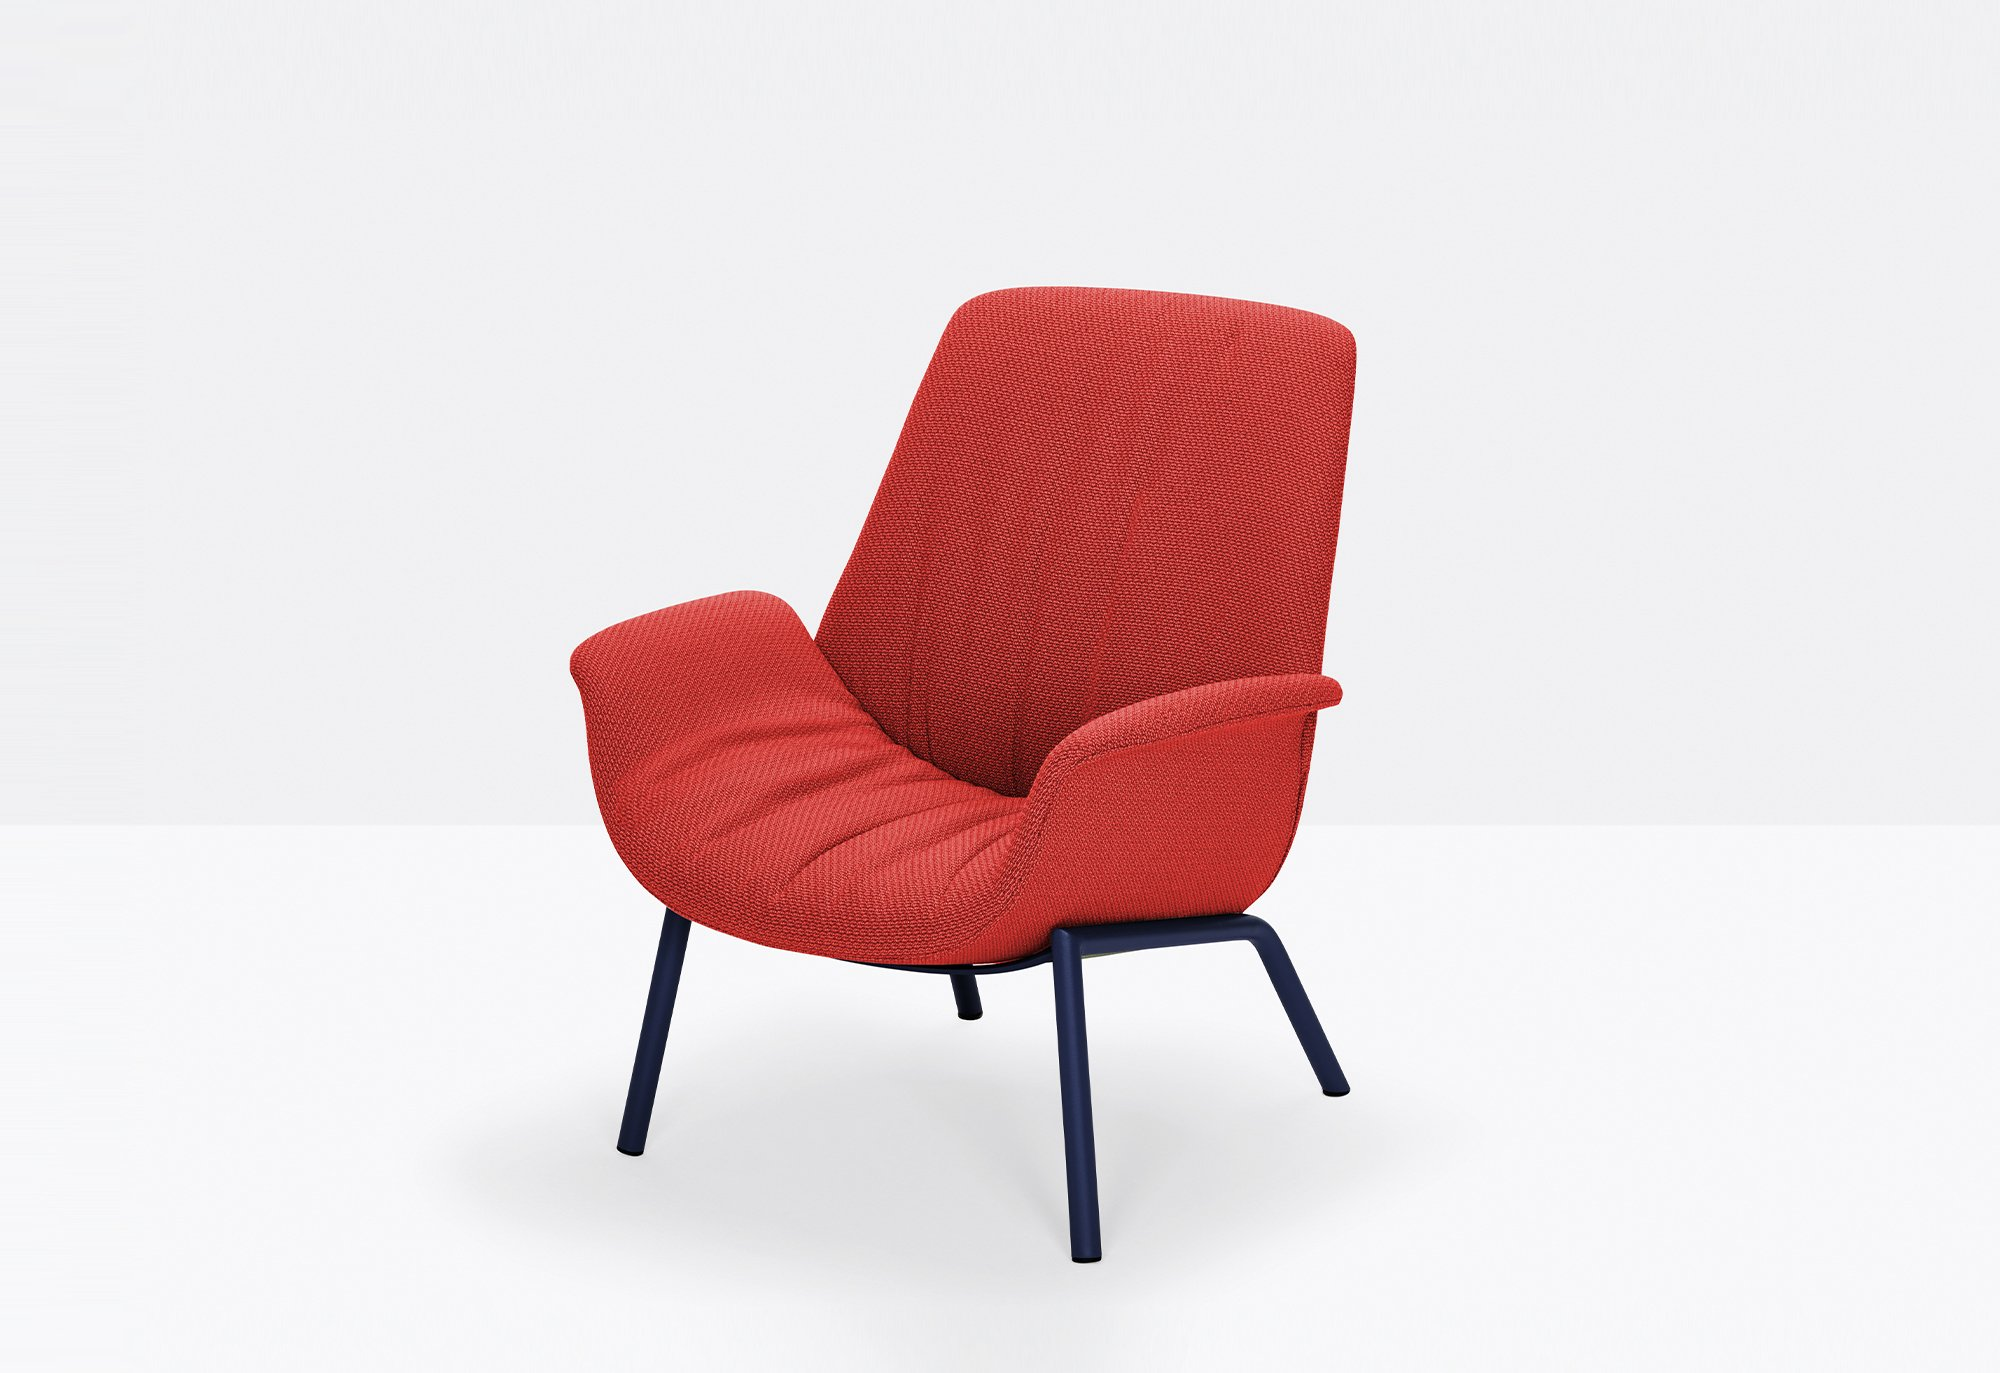 ILA Armchair lounge from Pedrali, designed by Patrick Jouin